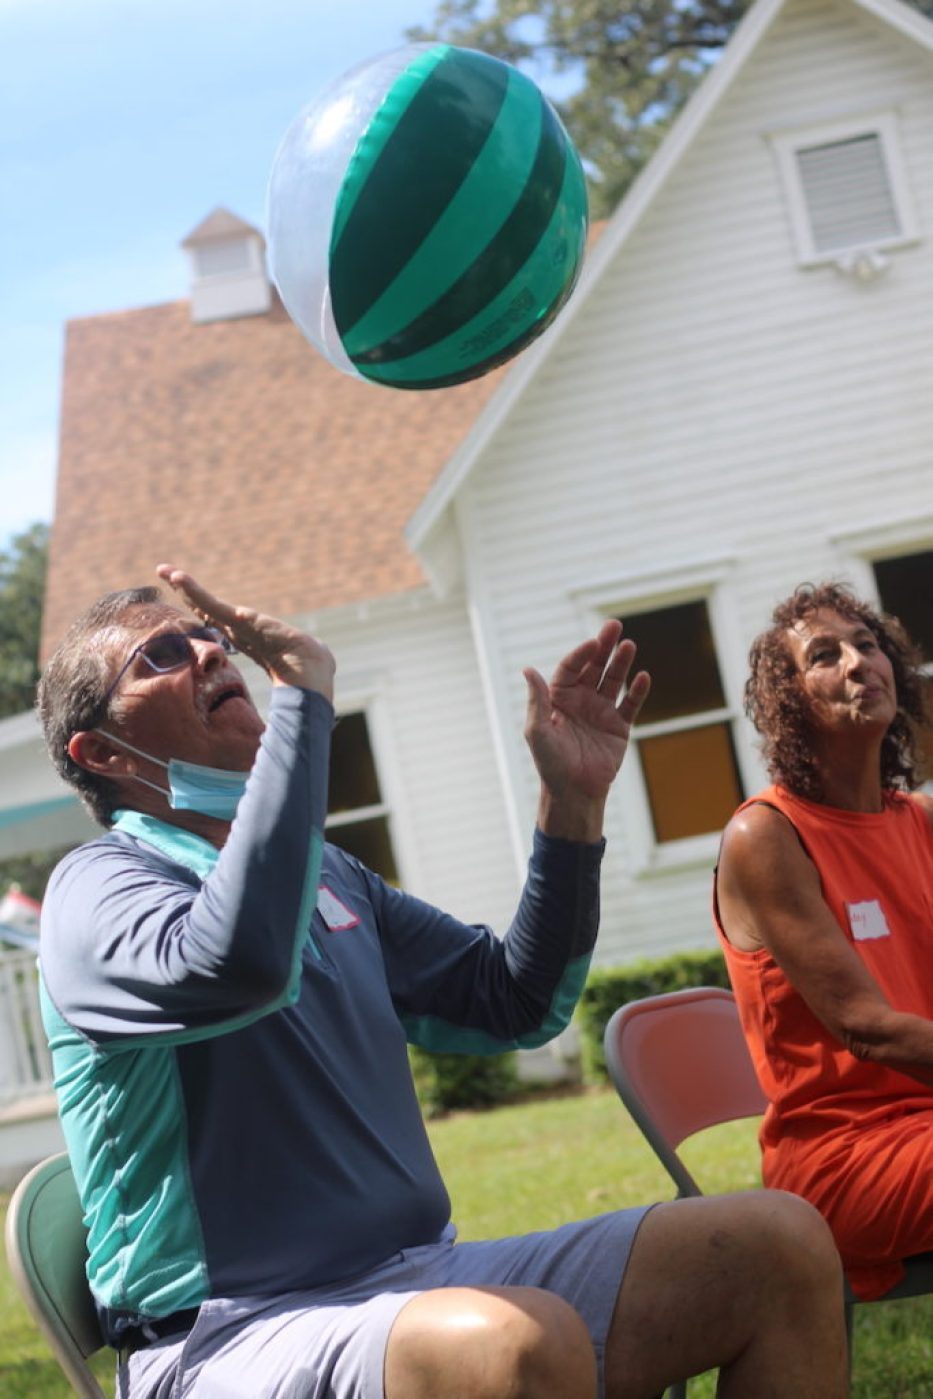 A photo of a man sitting in a chair outside tossing a ball in the air with a woman sitting next to him.